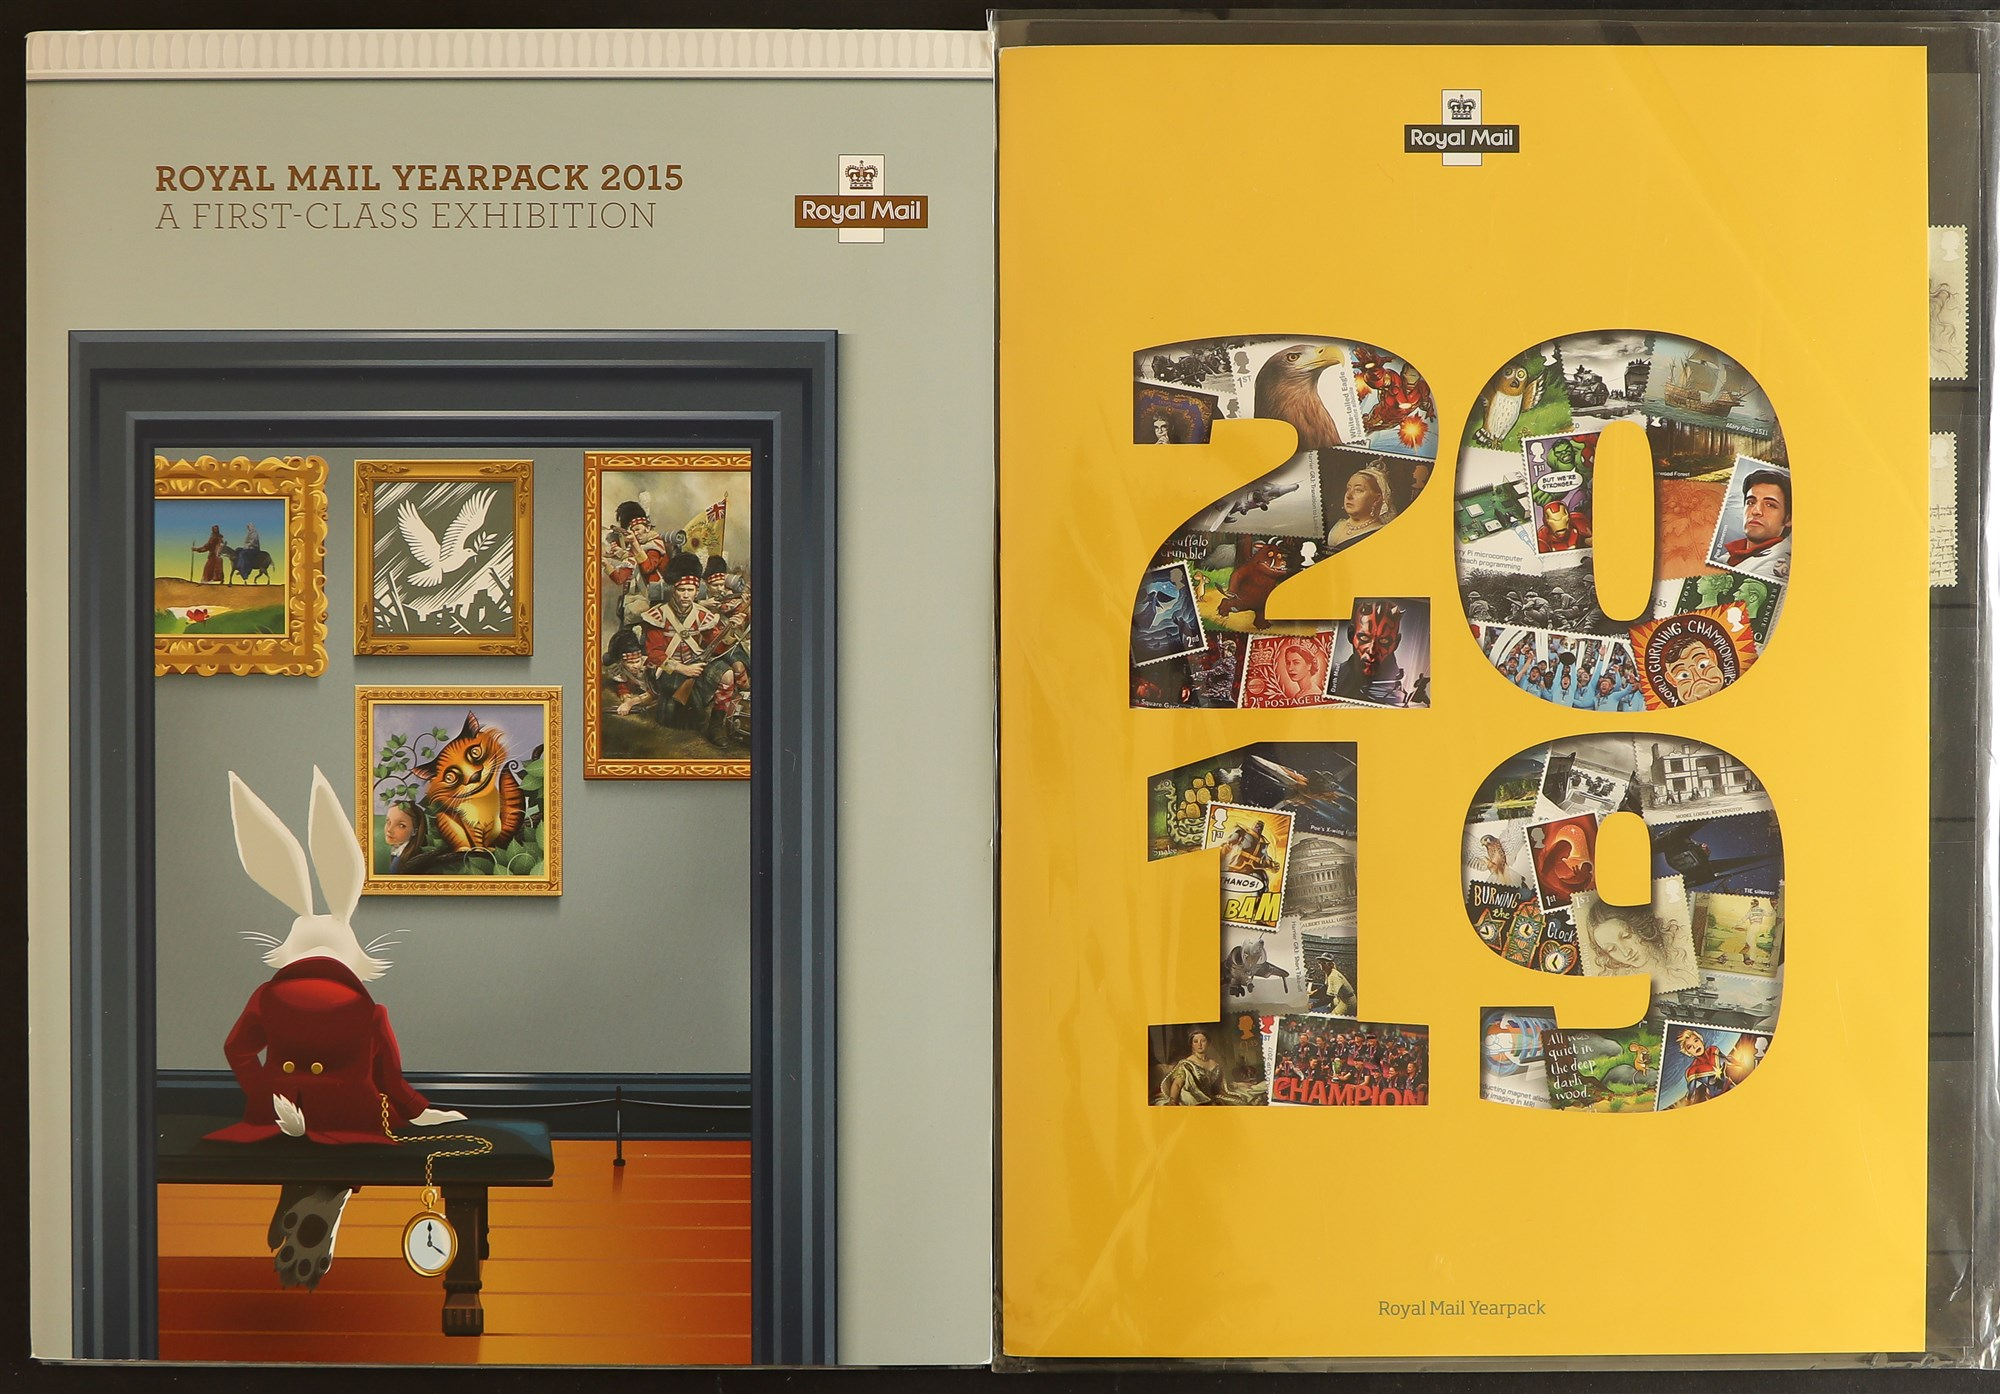 GB.ELIZABETH II YEARPACKS 2015 - 2020. 6 Royal Mail yearpacks which include the commemorative stamps - Image 2 of 3